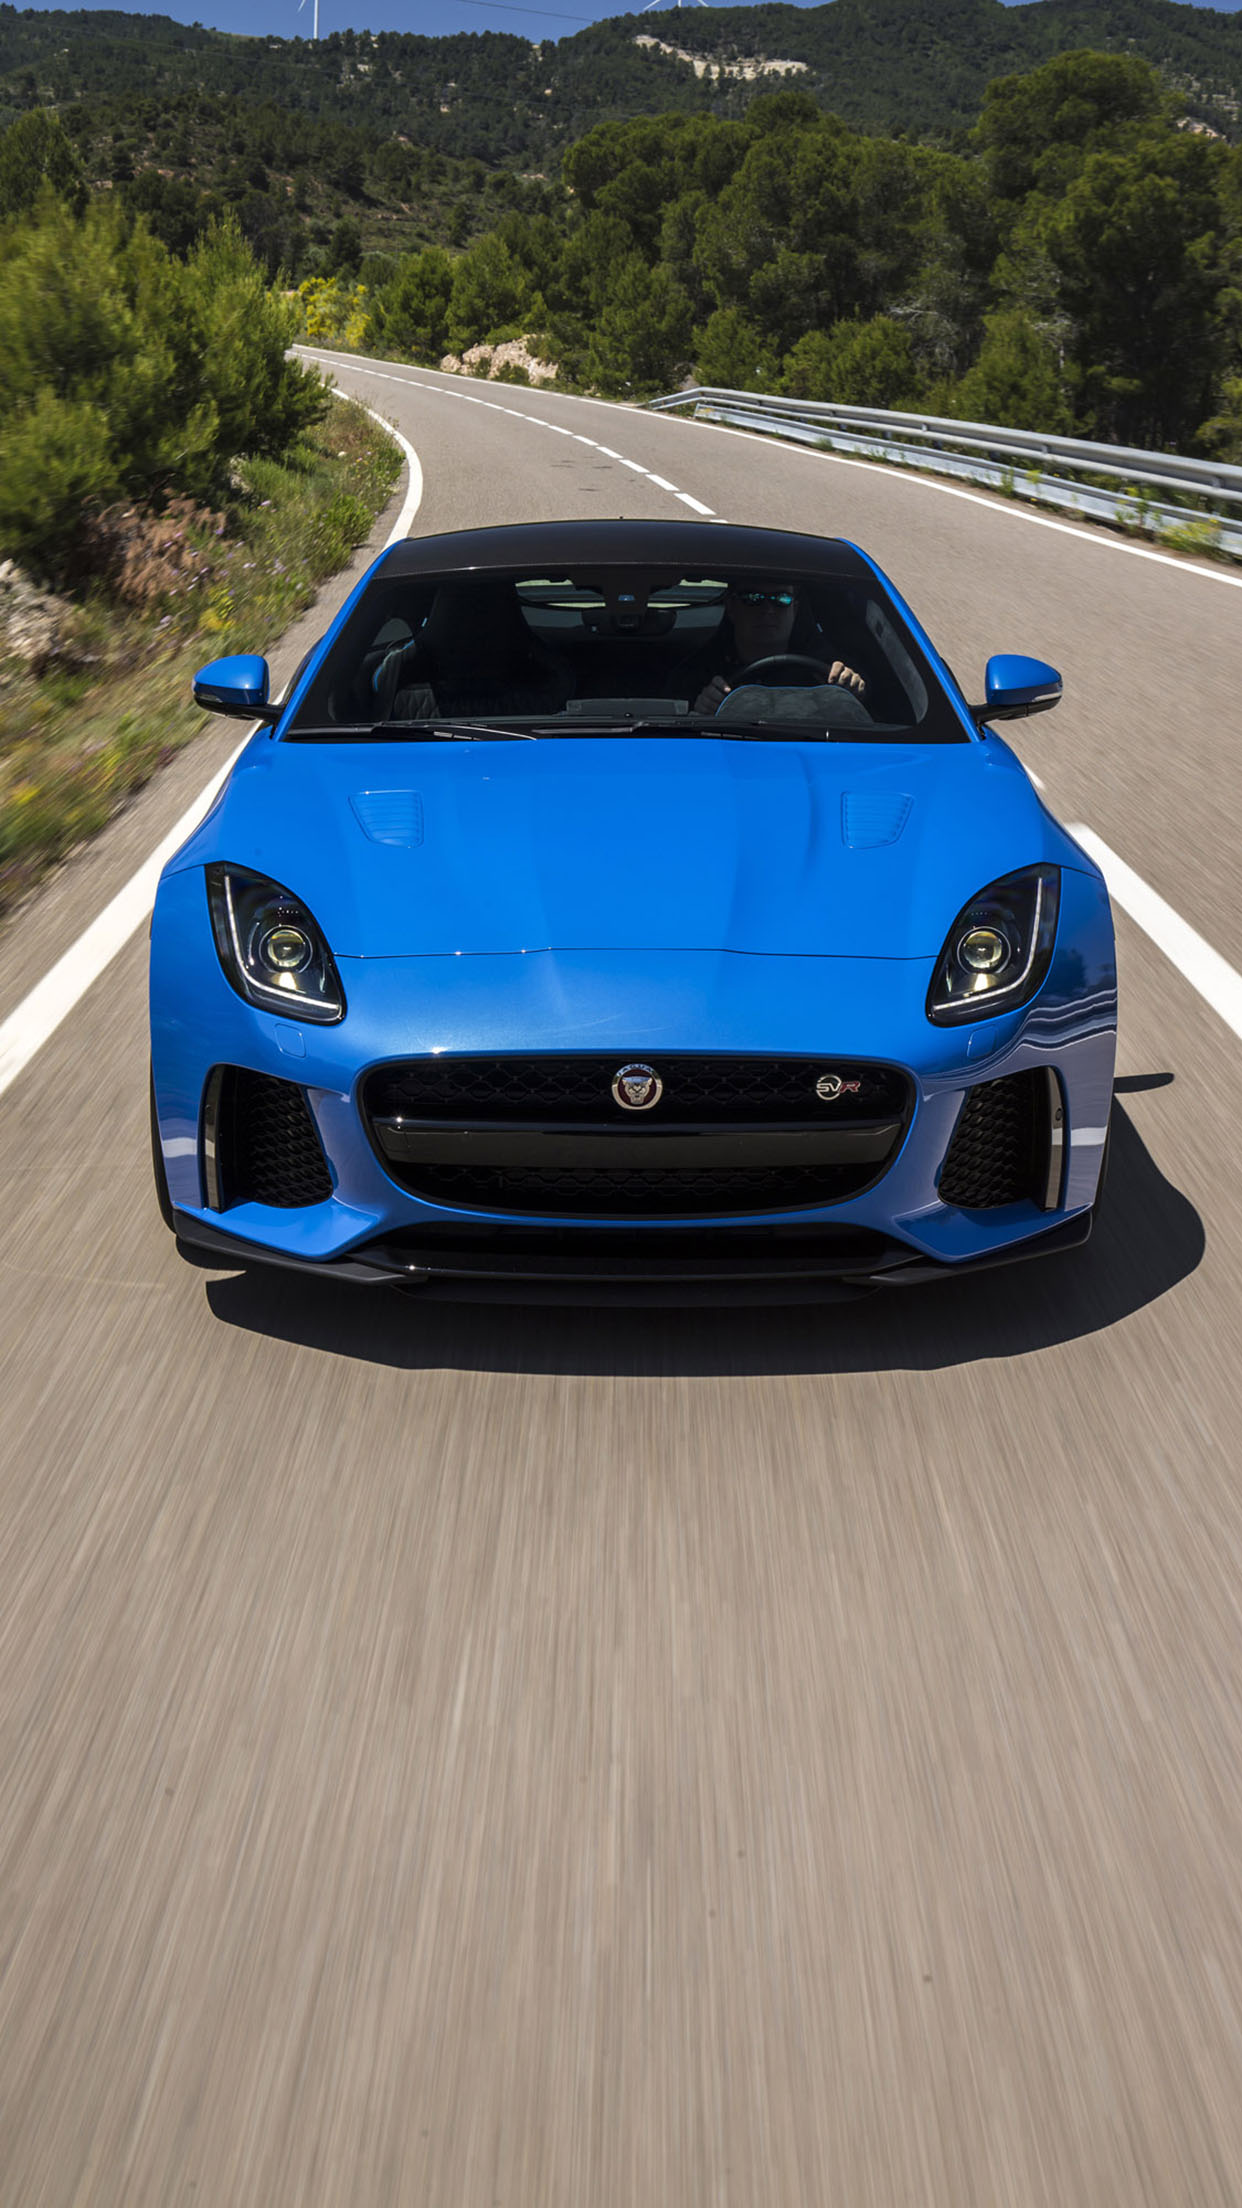 Jaguard F Type SVR Front 3Wallpapers iPhone Parallax Jaguard F Type SVR front